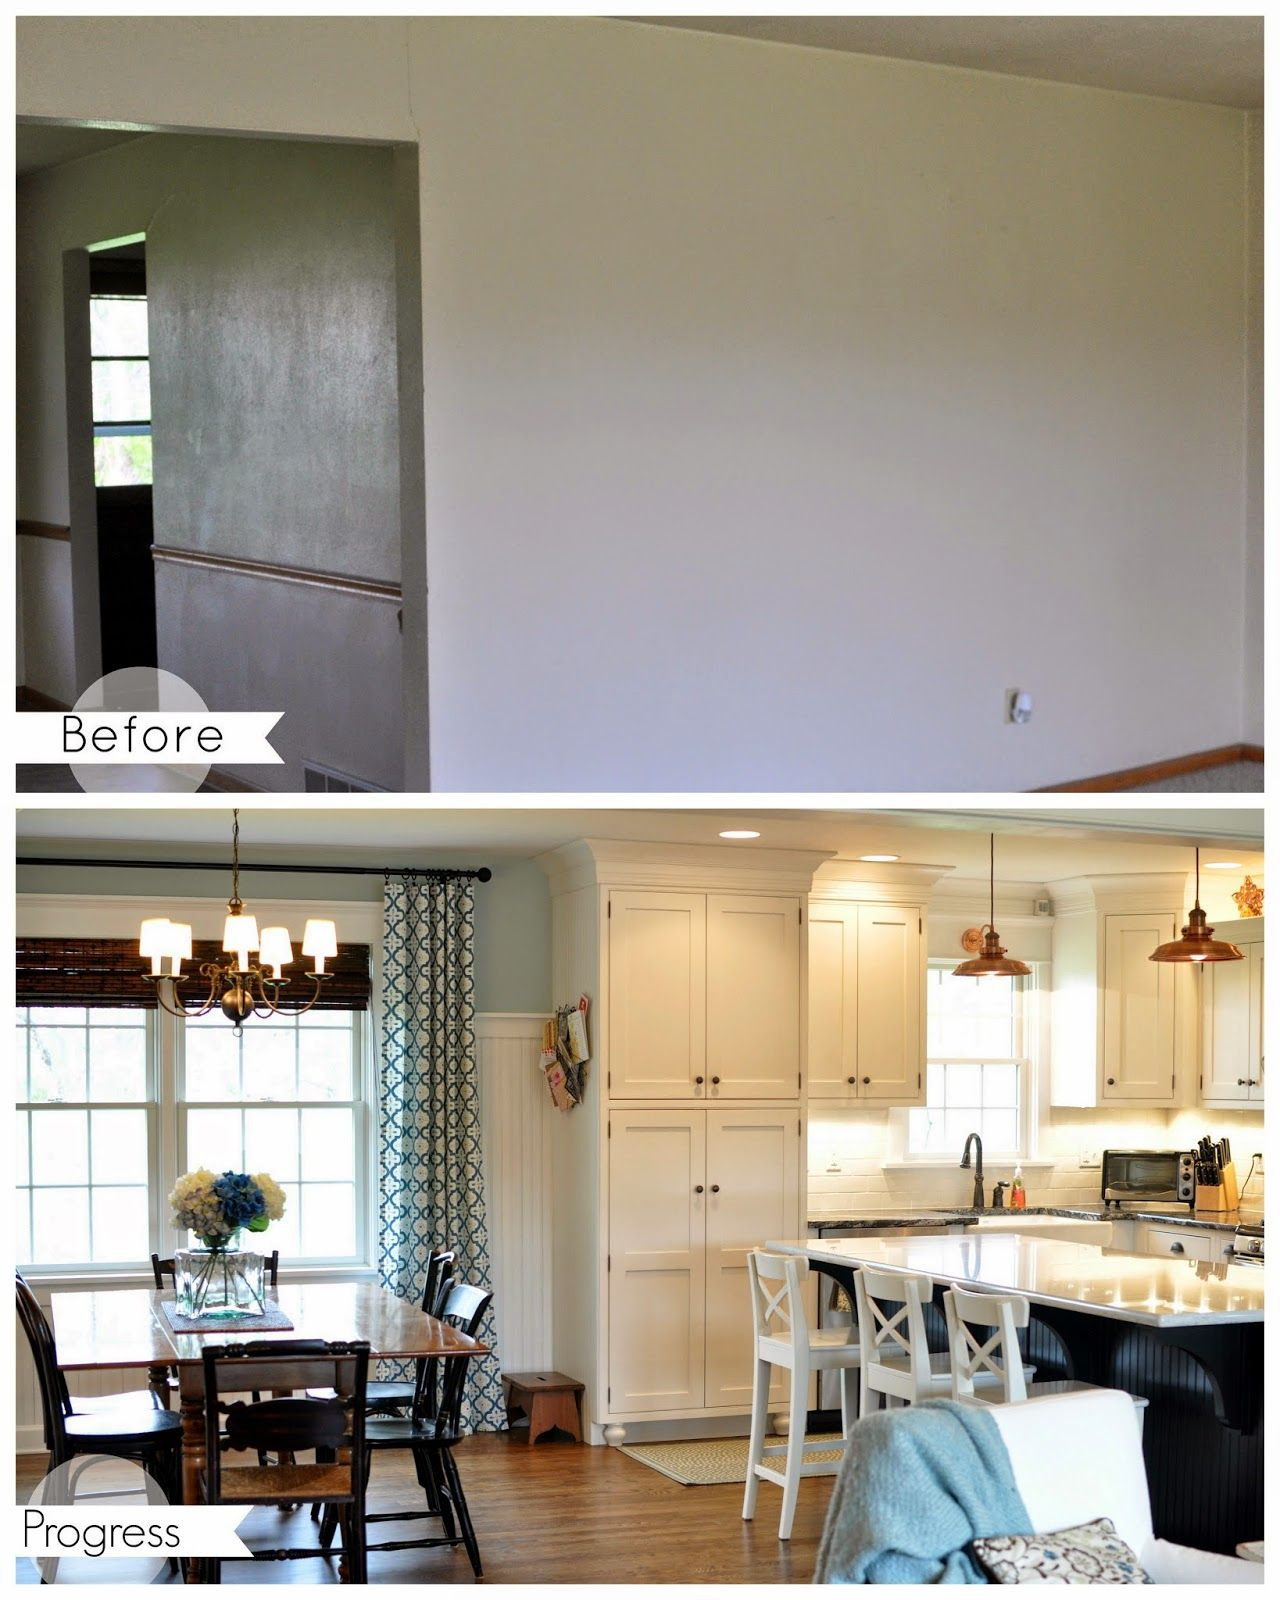 Kitchen Remodel With Dining Room Addition: Opening Up A Kitchen / Dining Area (2) Wall Removal, Added